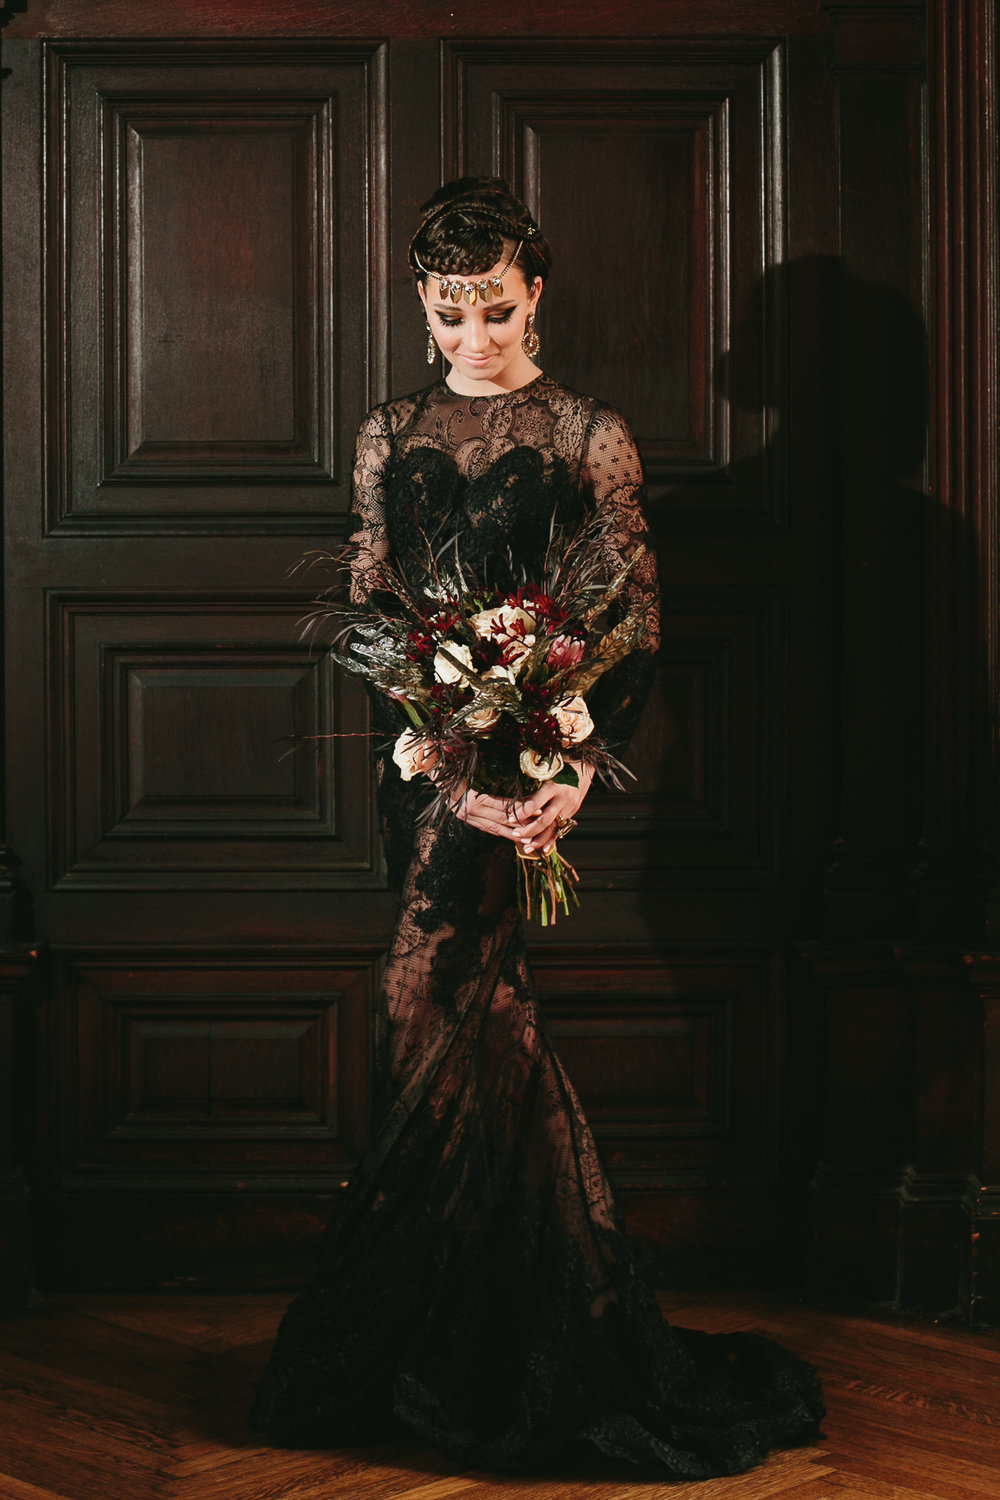 16 Black Lace Wedding Black and Gold Feather Bouquet Aribella Events.jpg